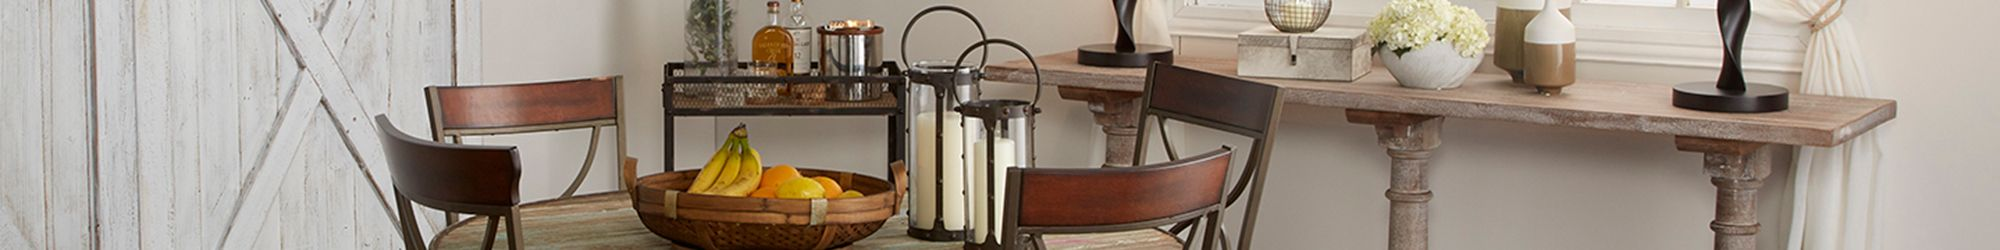 Candlesticks, Candle Holders & Wall Sconces